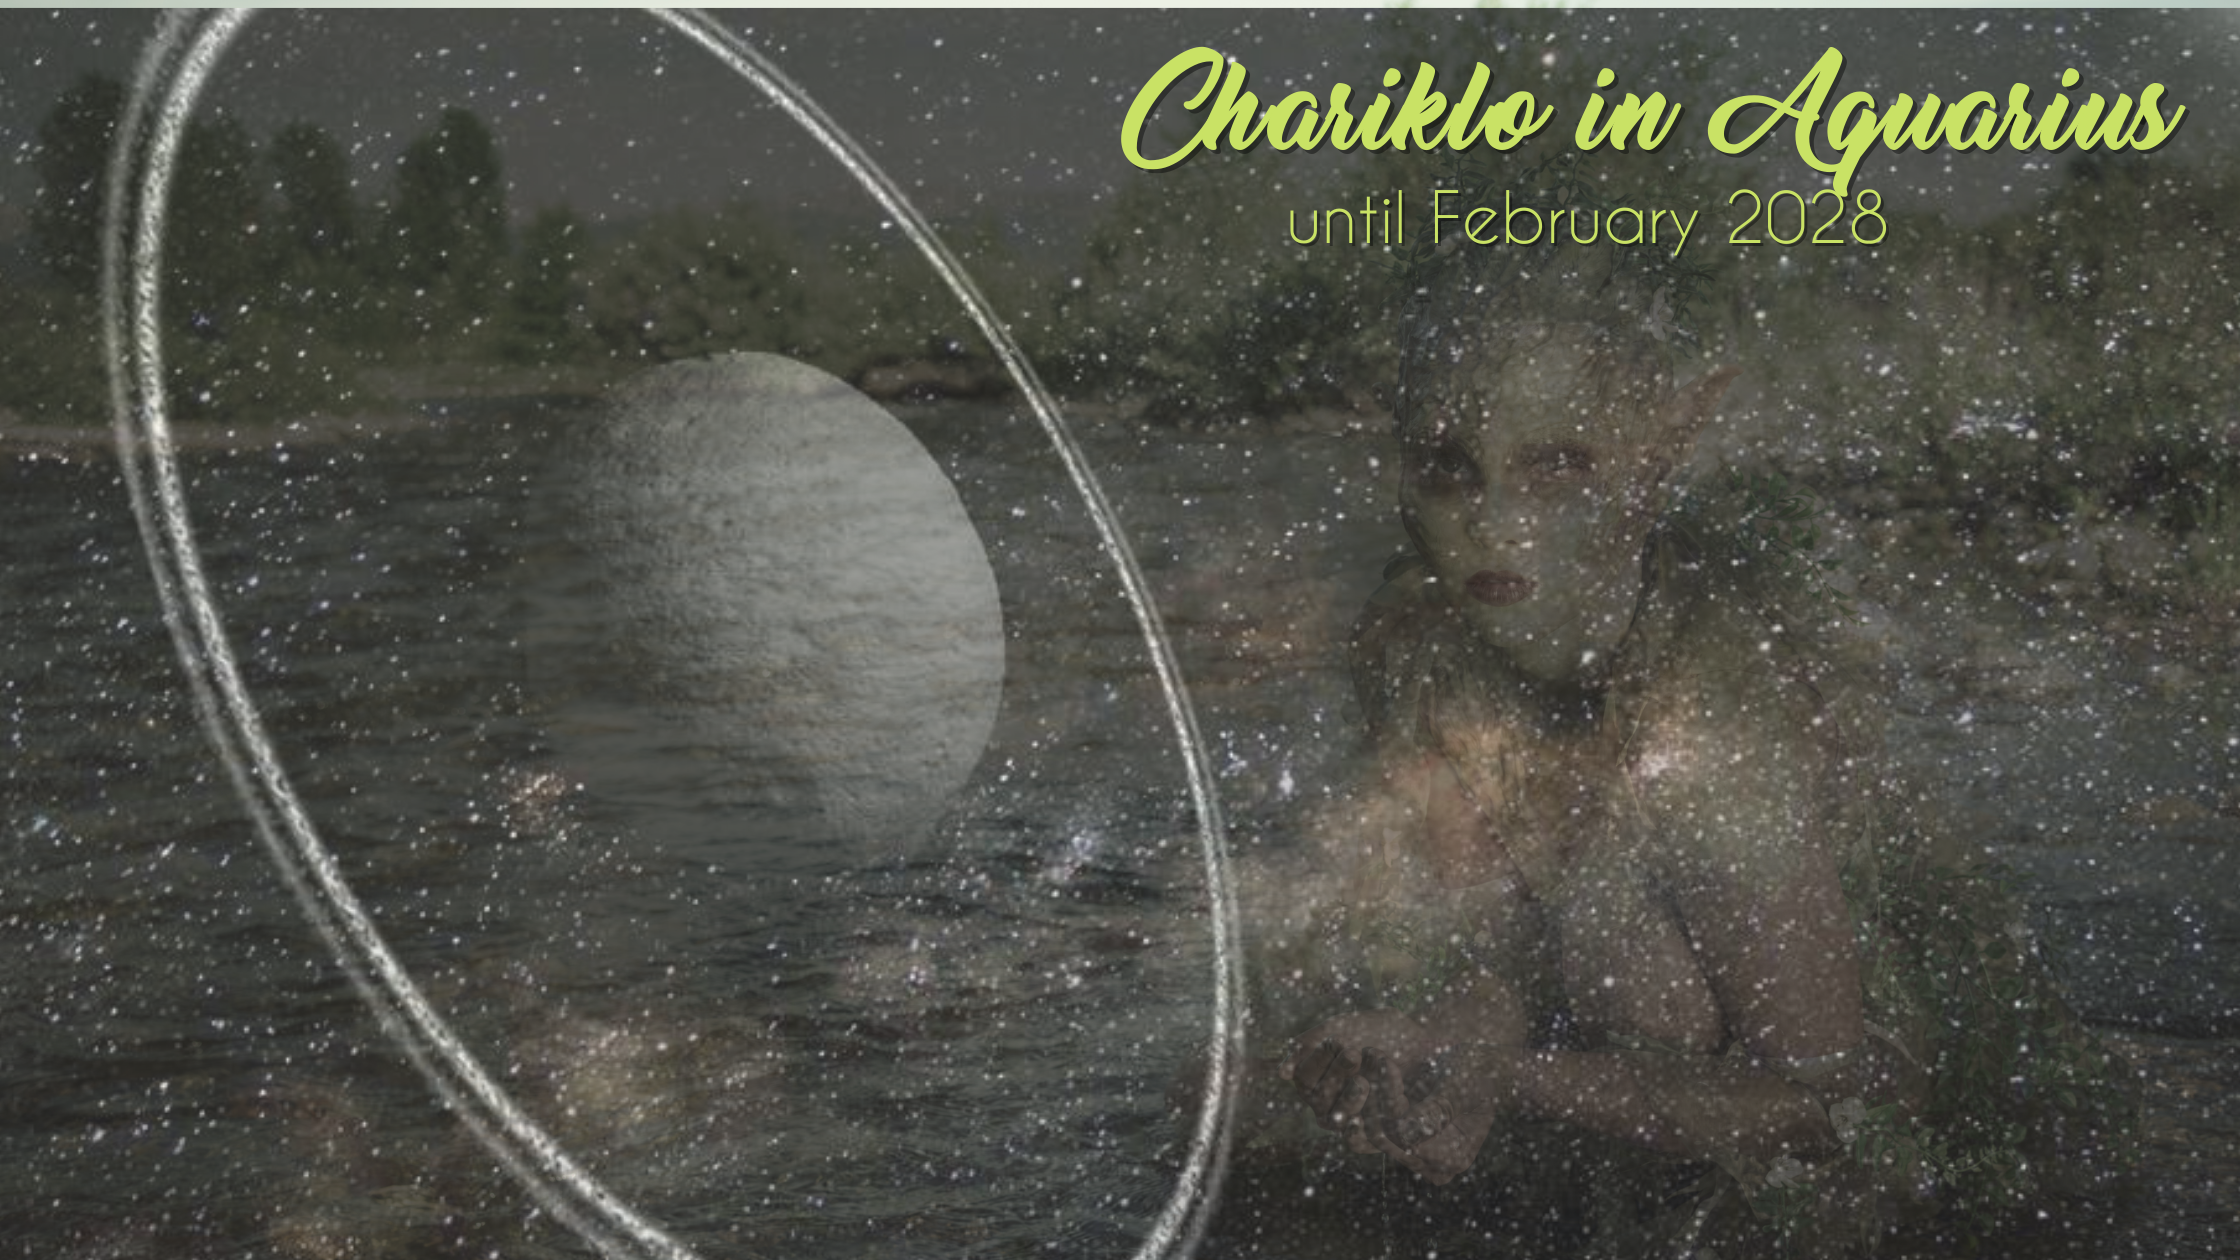 Chariklo in Aquarius – until February 2028